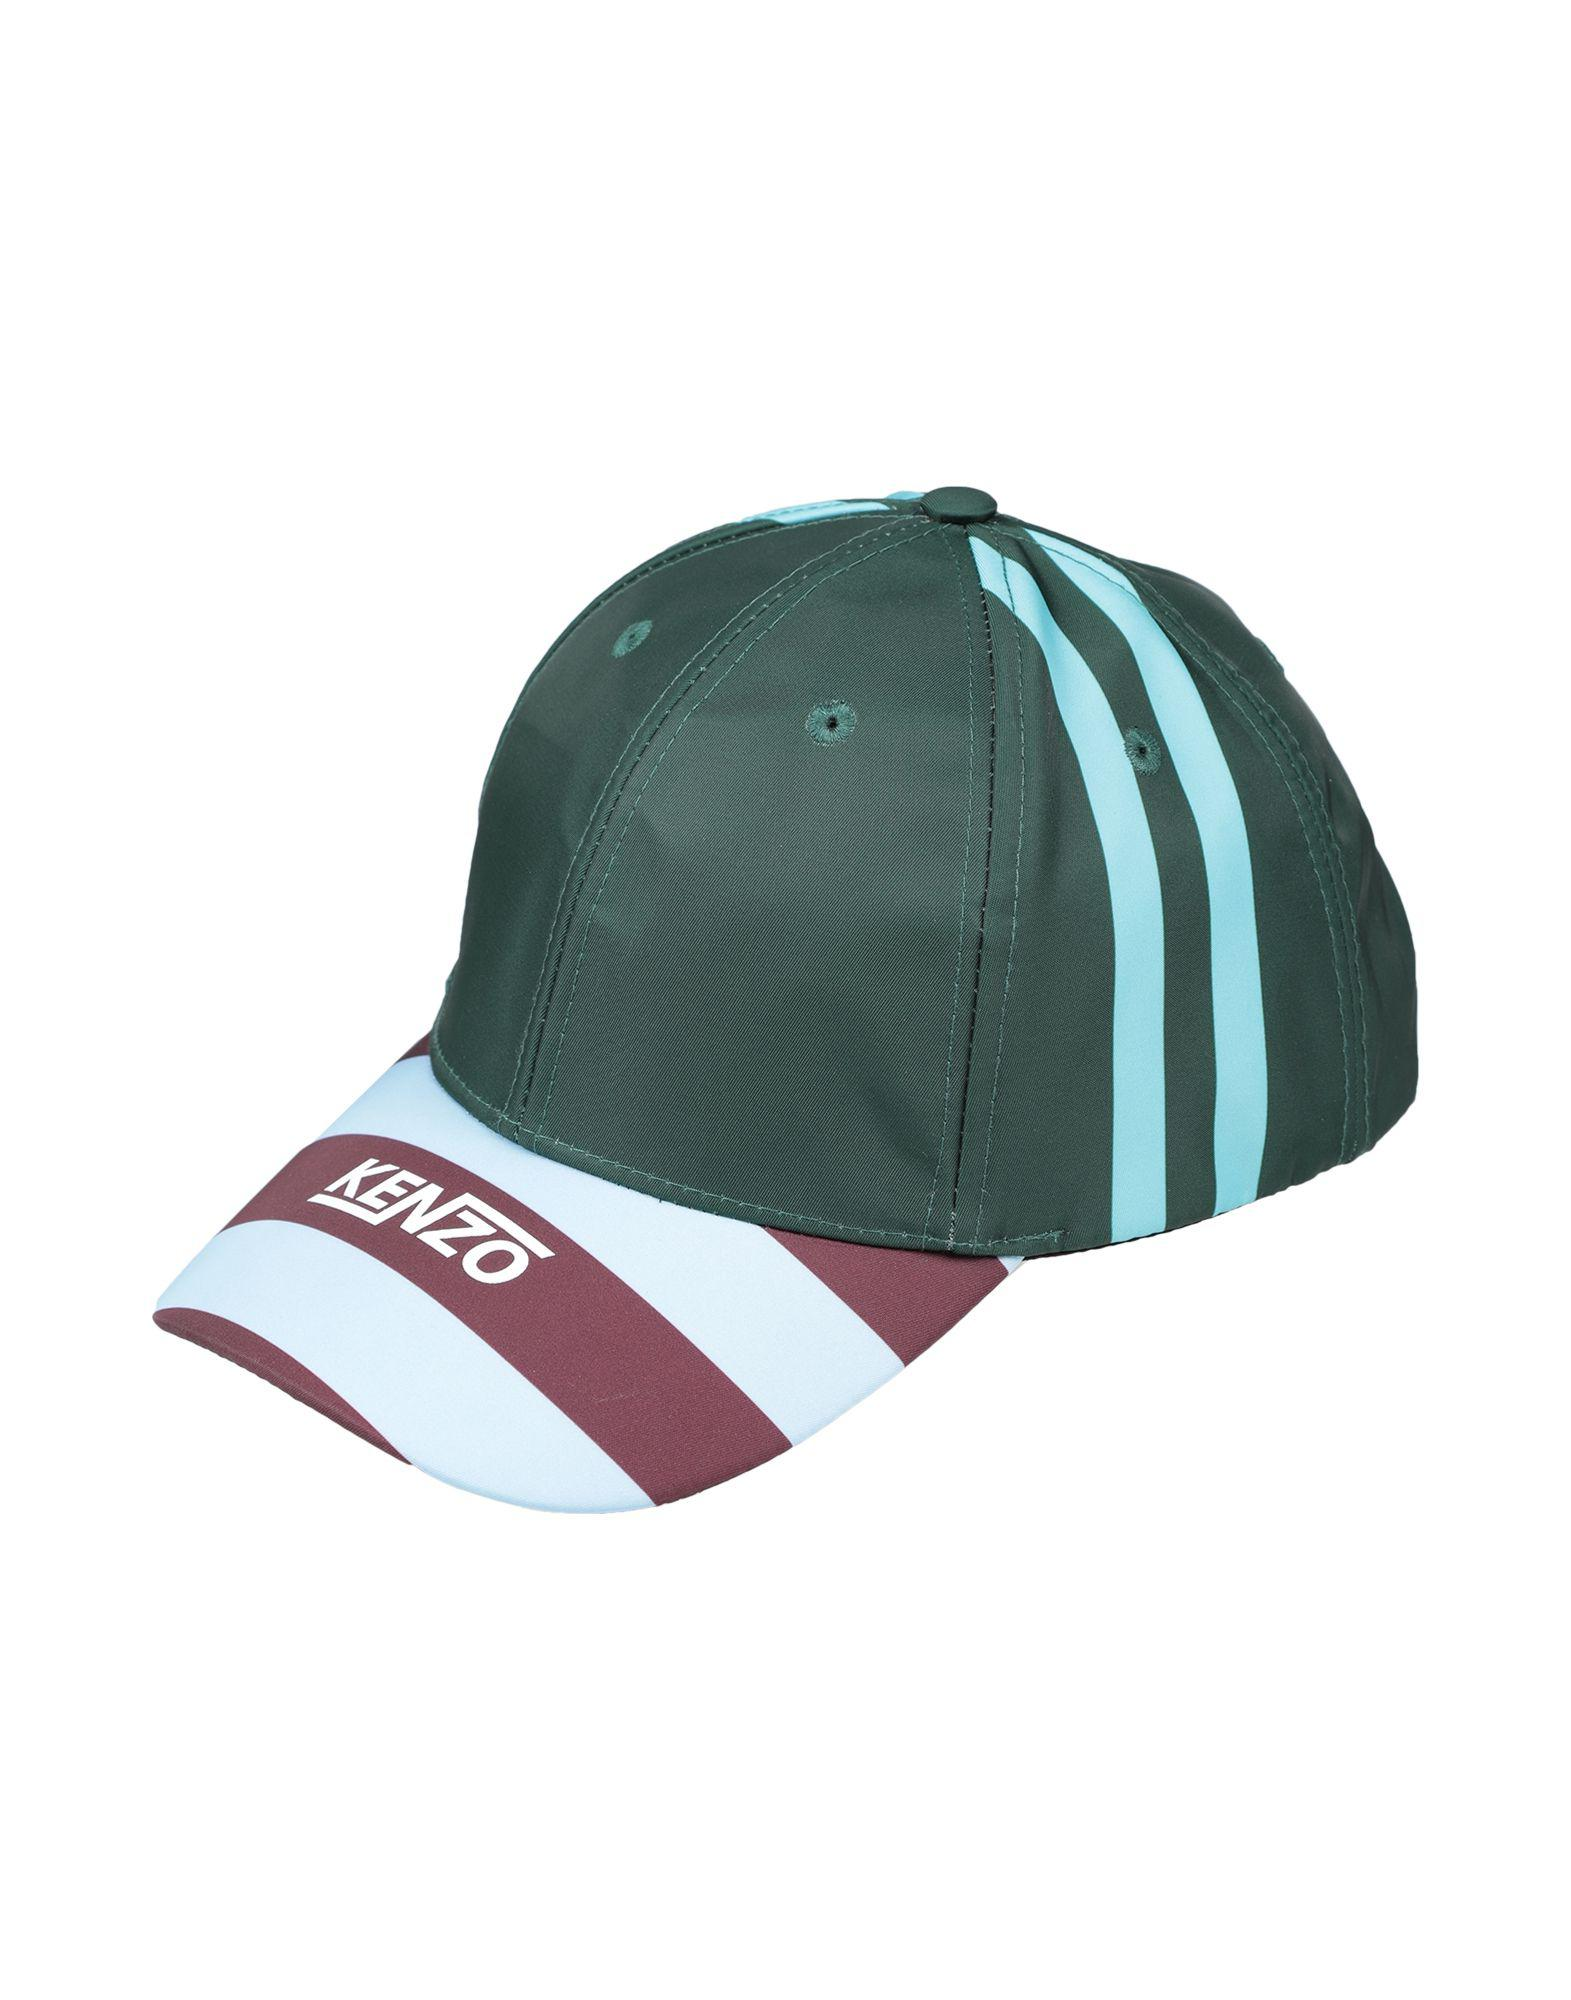 Kenzo Hat in Green for Men - Save 23.47826086956522% - Lyst 44abf4c8f245